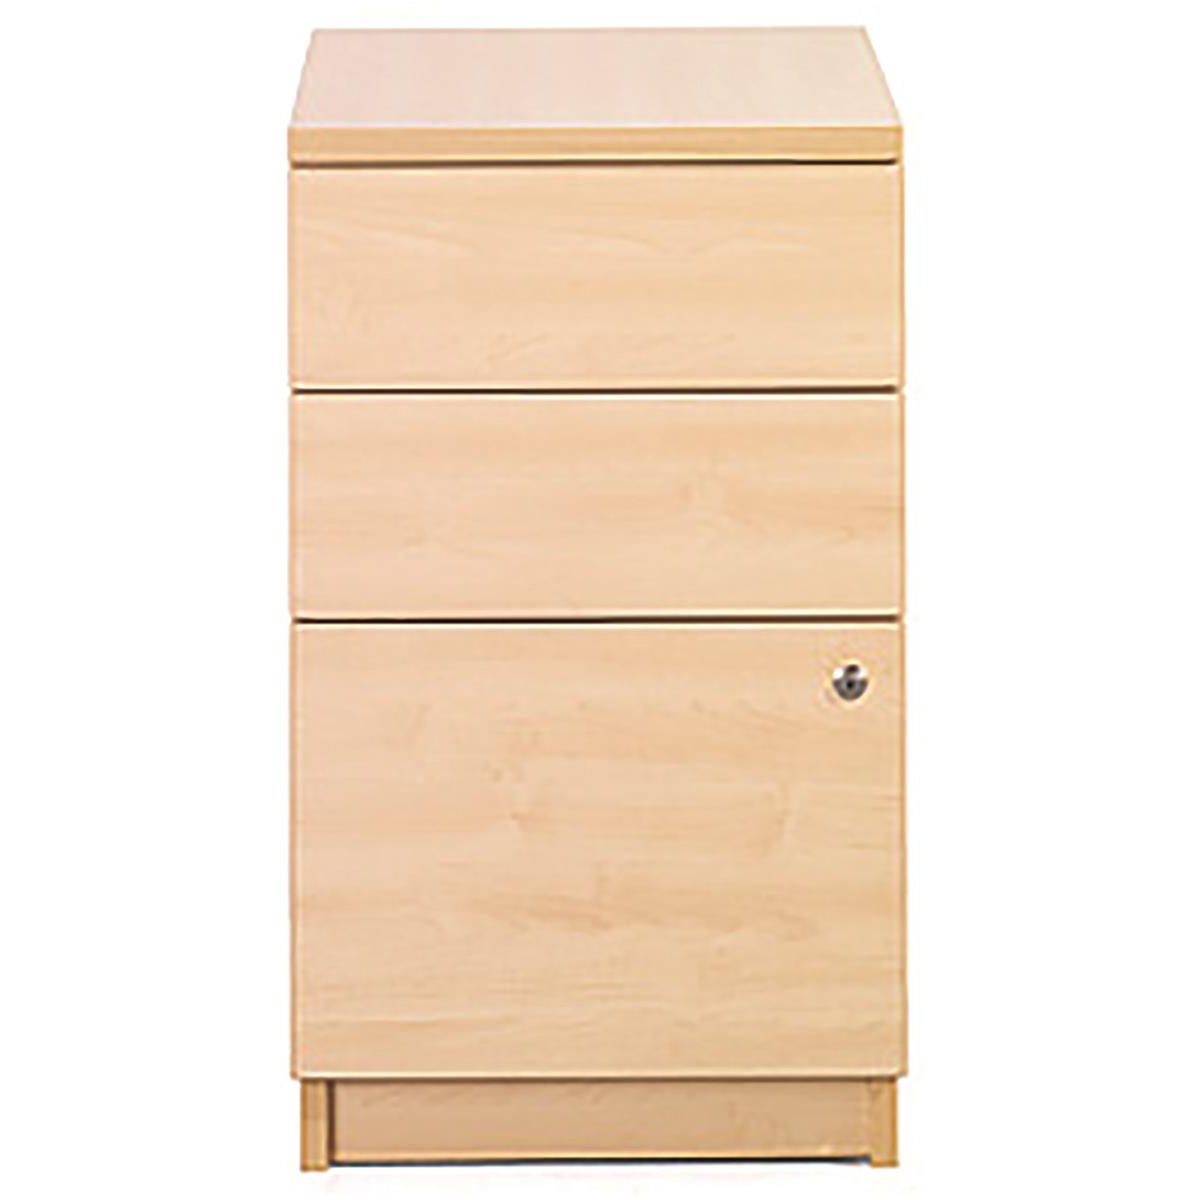 Pedestals Sonix Desk High 3 Drawer 600D Pedestal 430x600x730mm Acer Maple Ref w9681m